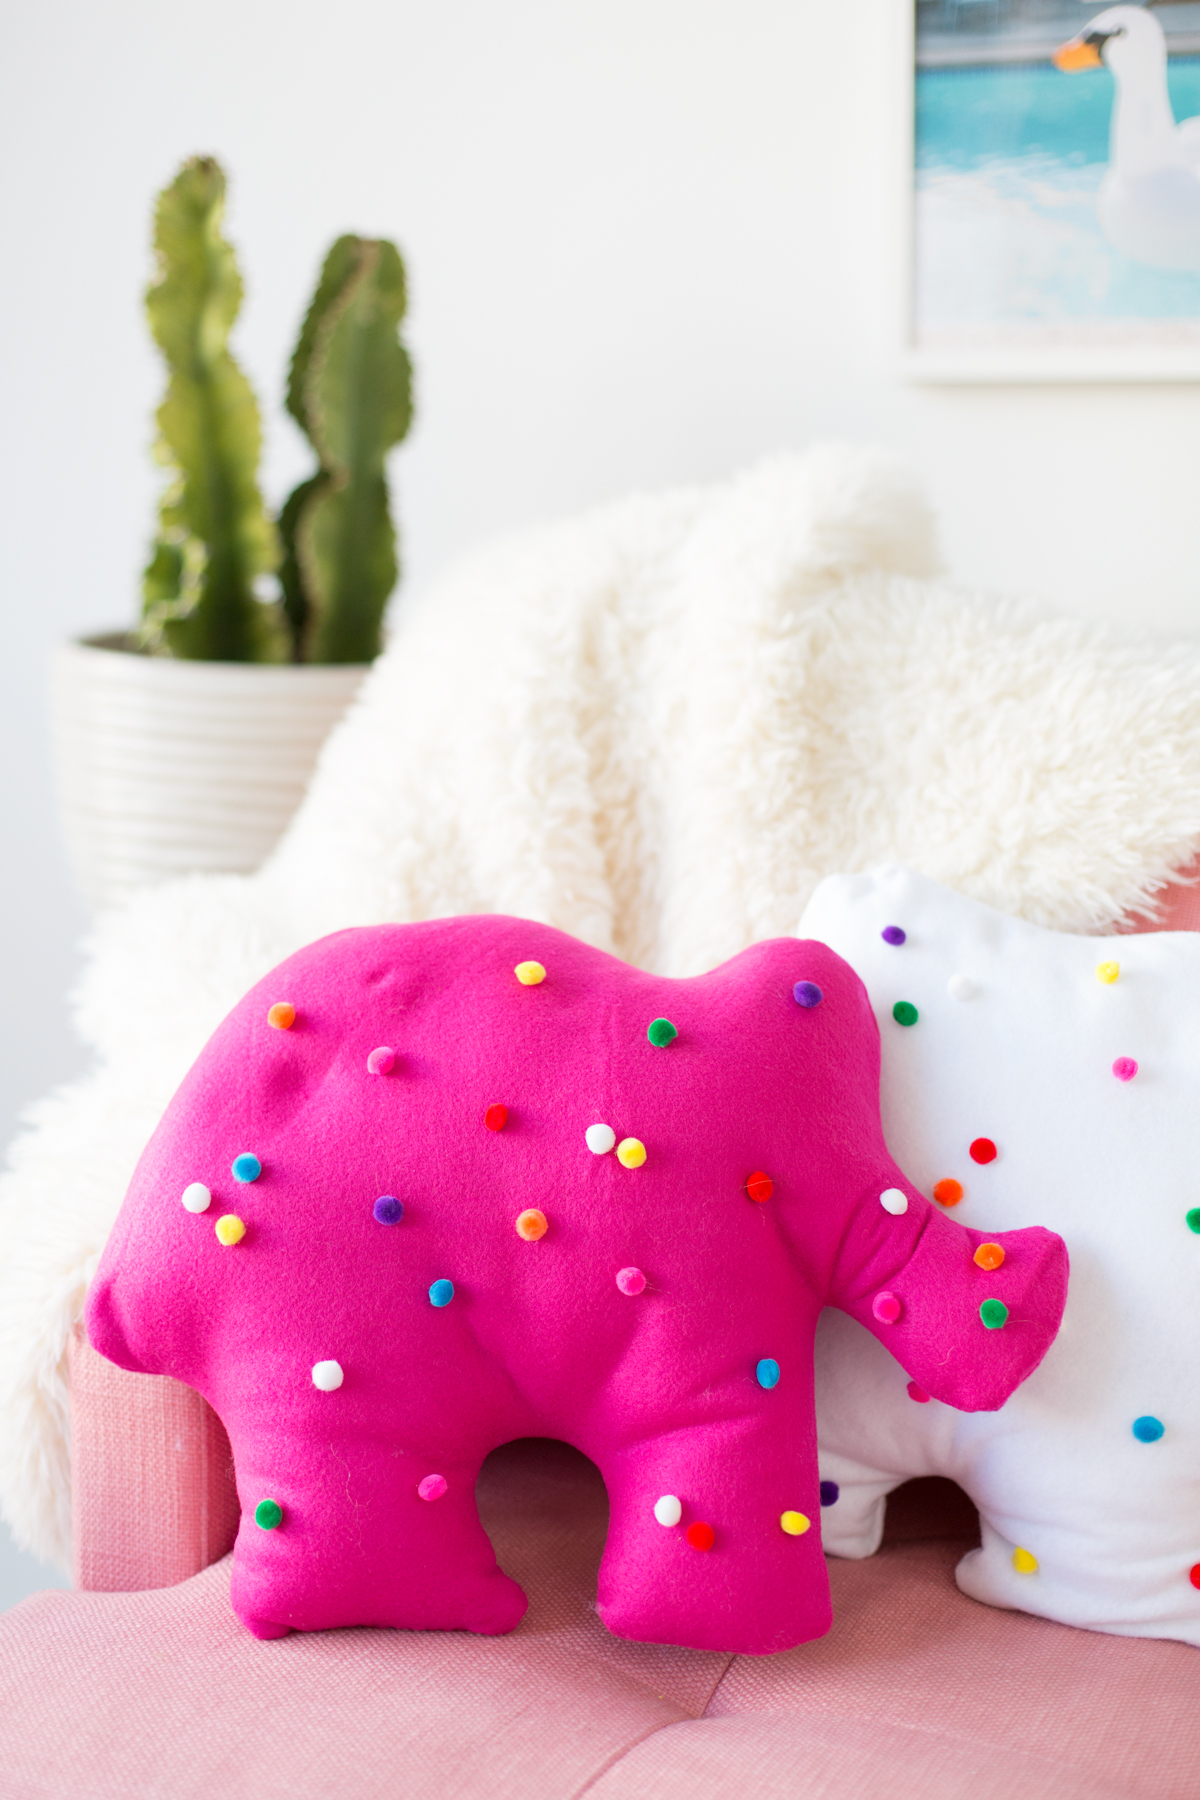 Circus animal cookie pillows from Studio DIY